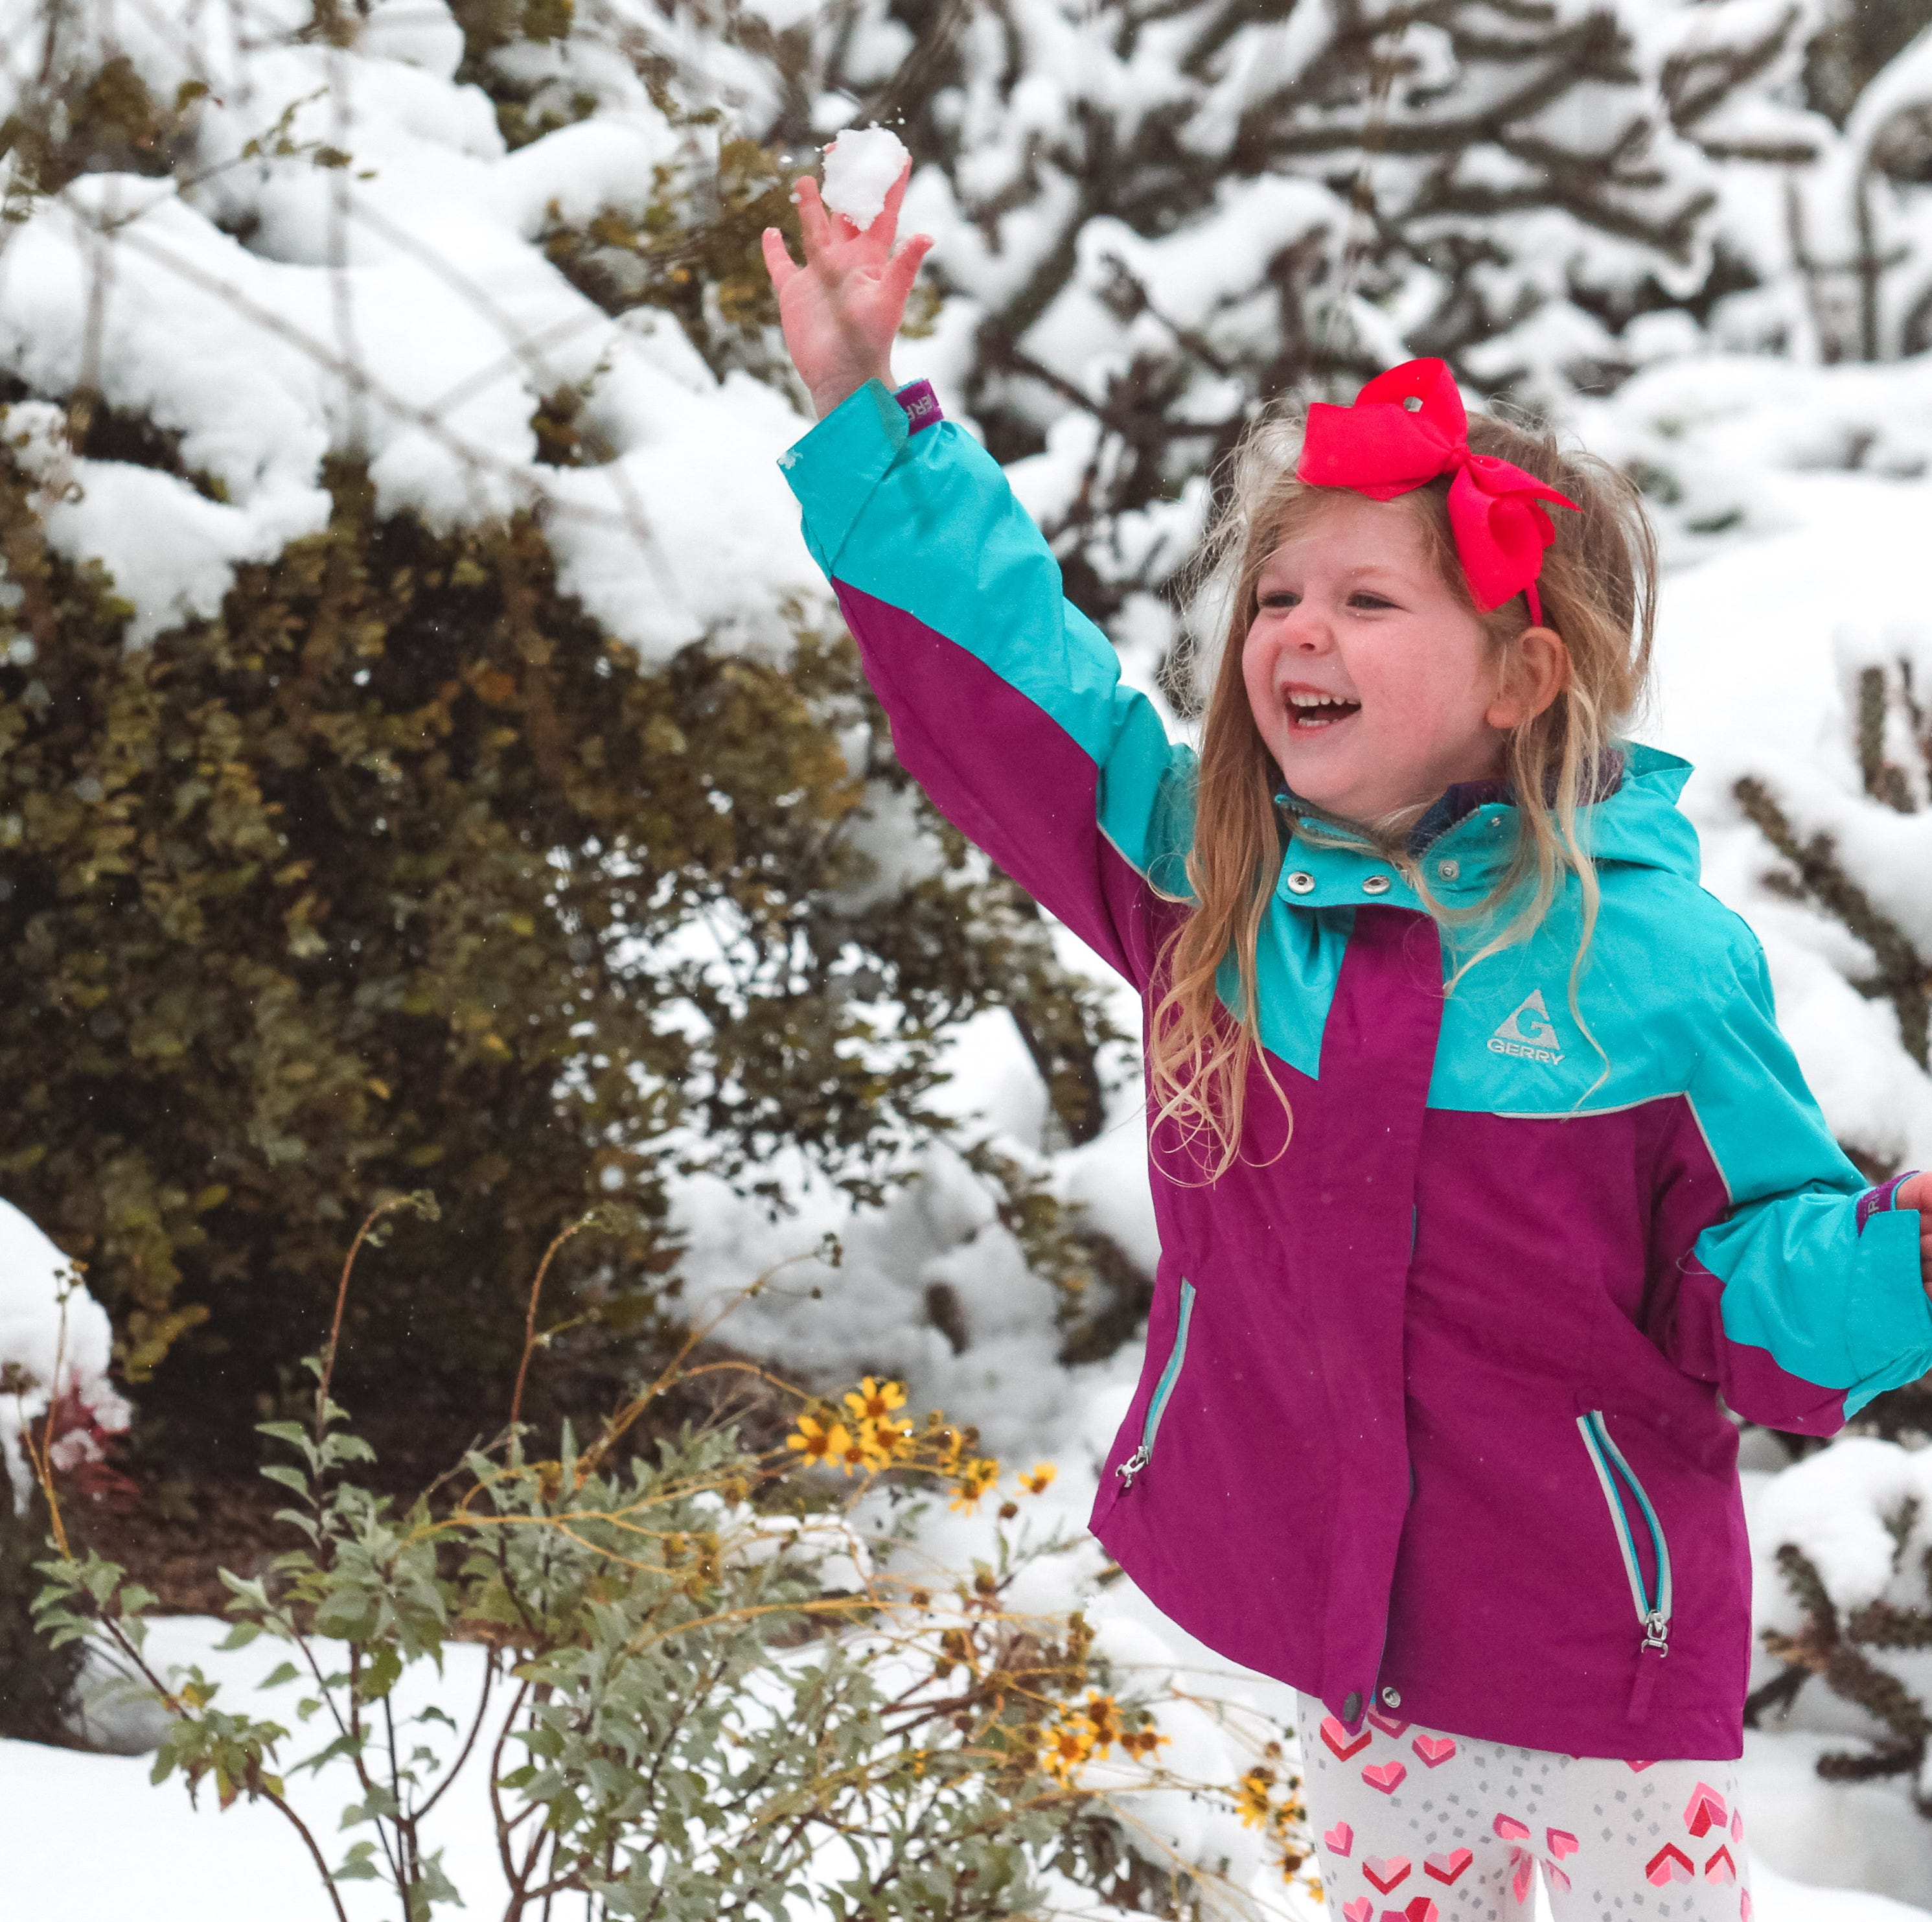 Snow blankets northern Scottsdale, residents come out to play